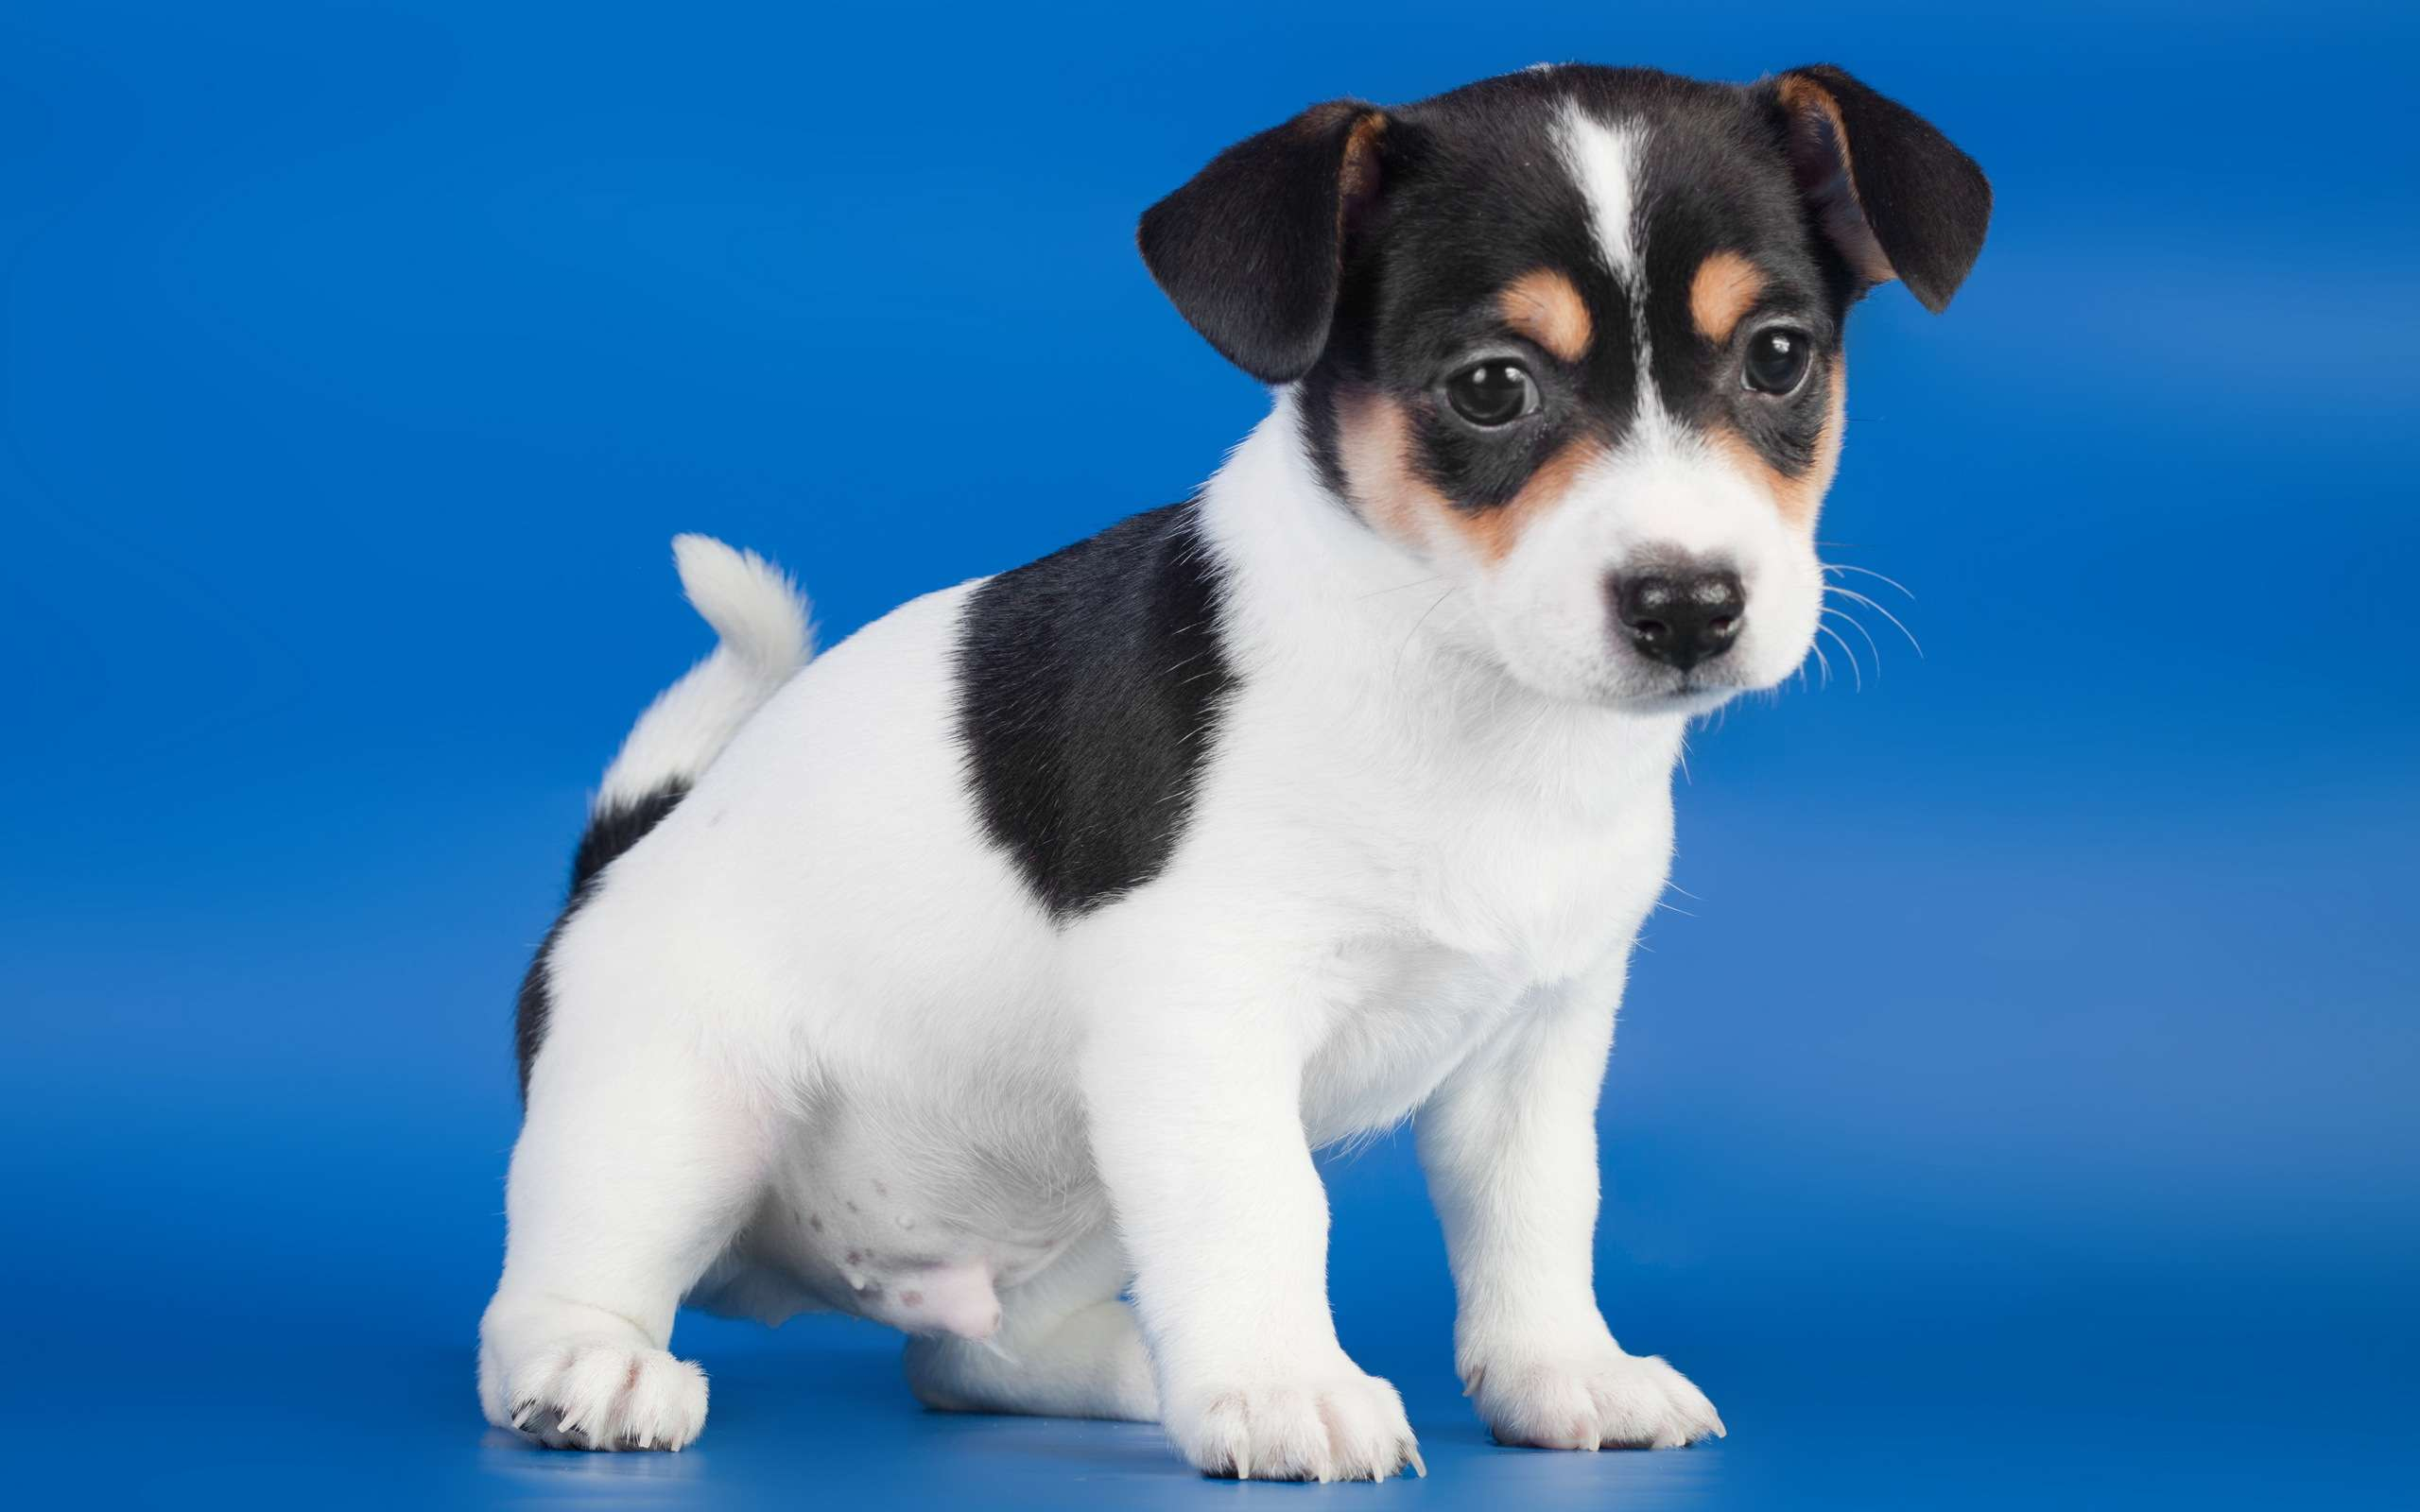 chat gratuite sans inscription Lyon